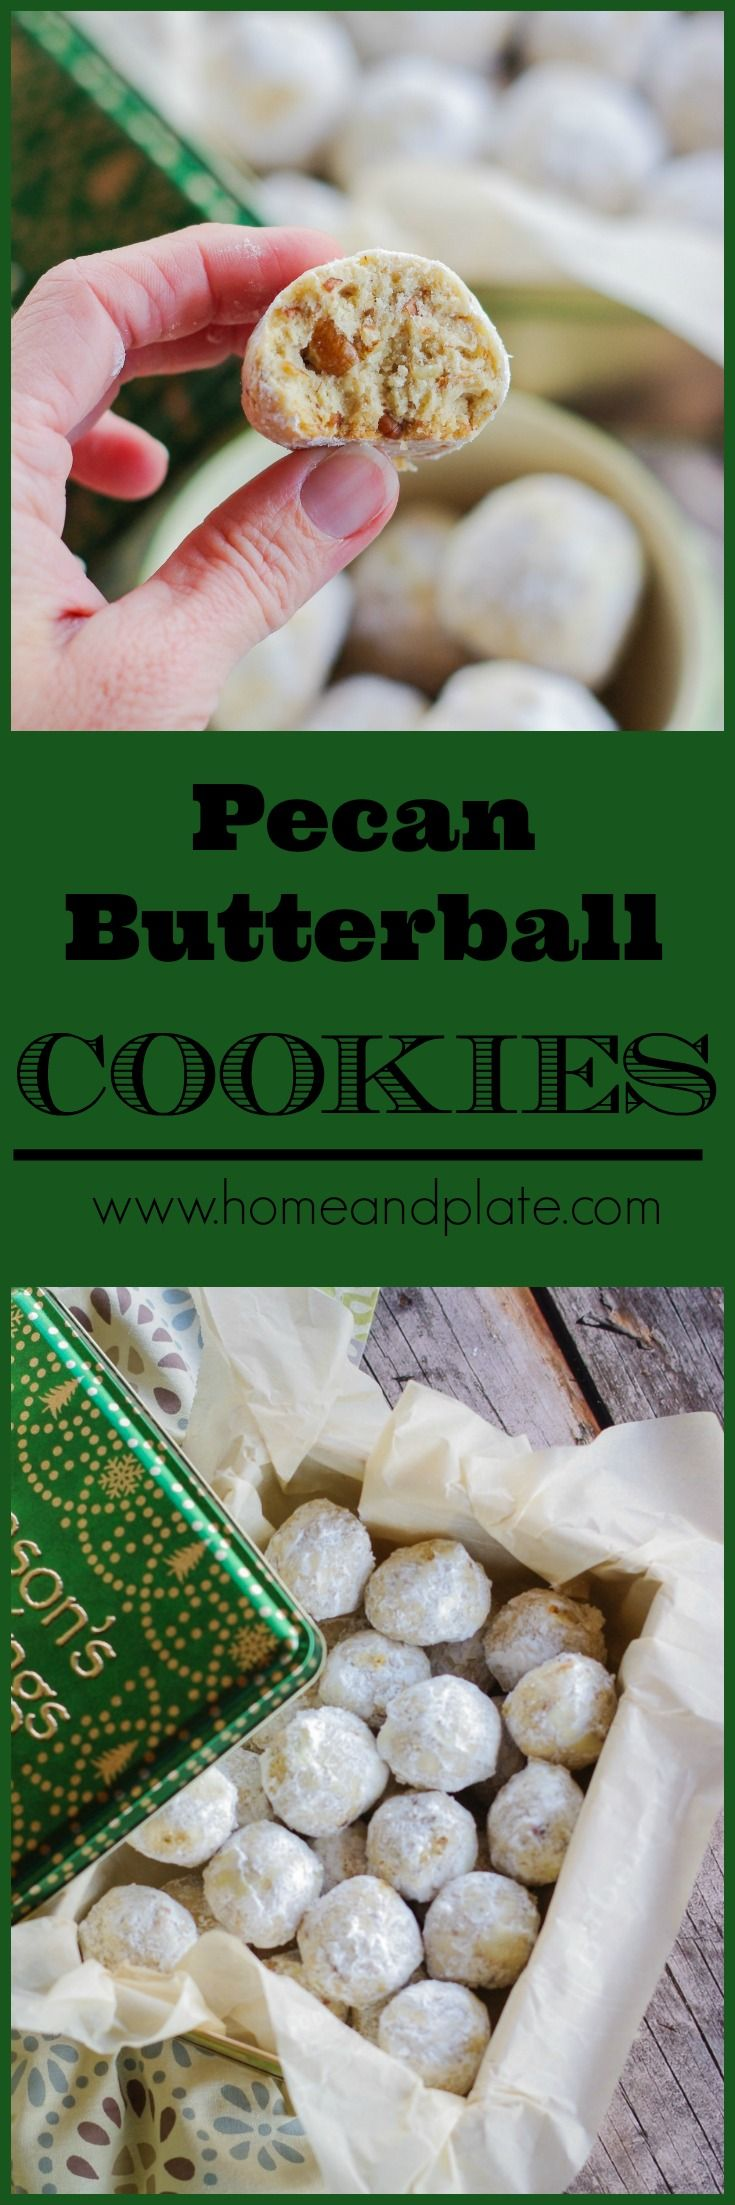 Pecan Butterball Cookies   www.homeandplate.com   These Pecan Butterball Cookies are melt in your mouth delicious. Perfect for the holidays or anytime of the year.